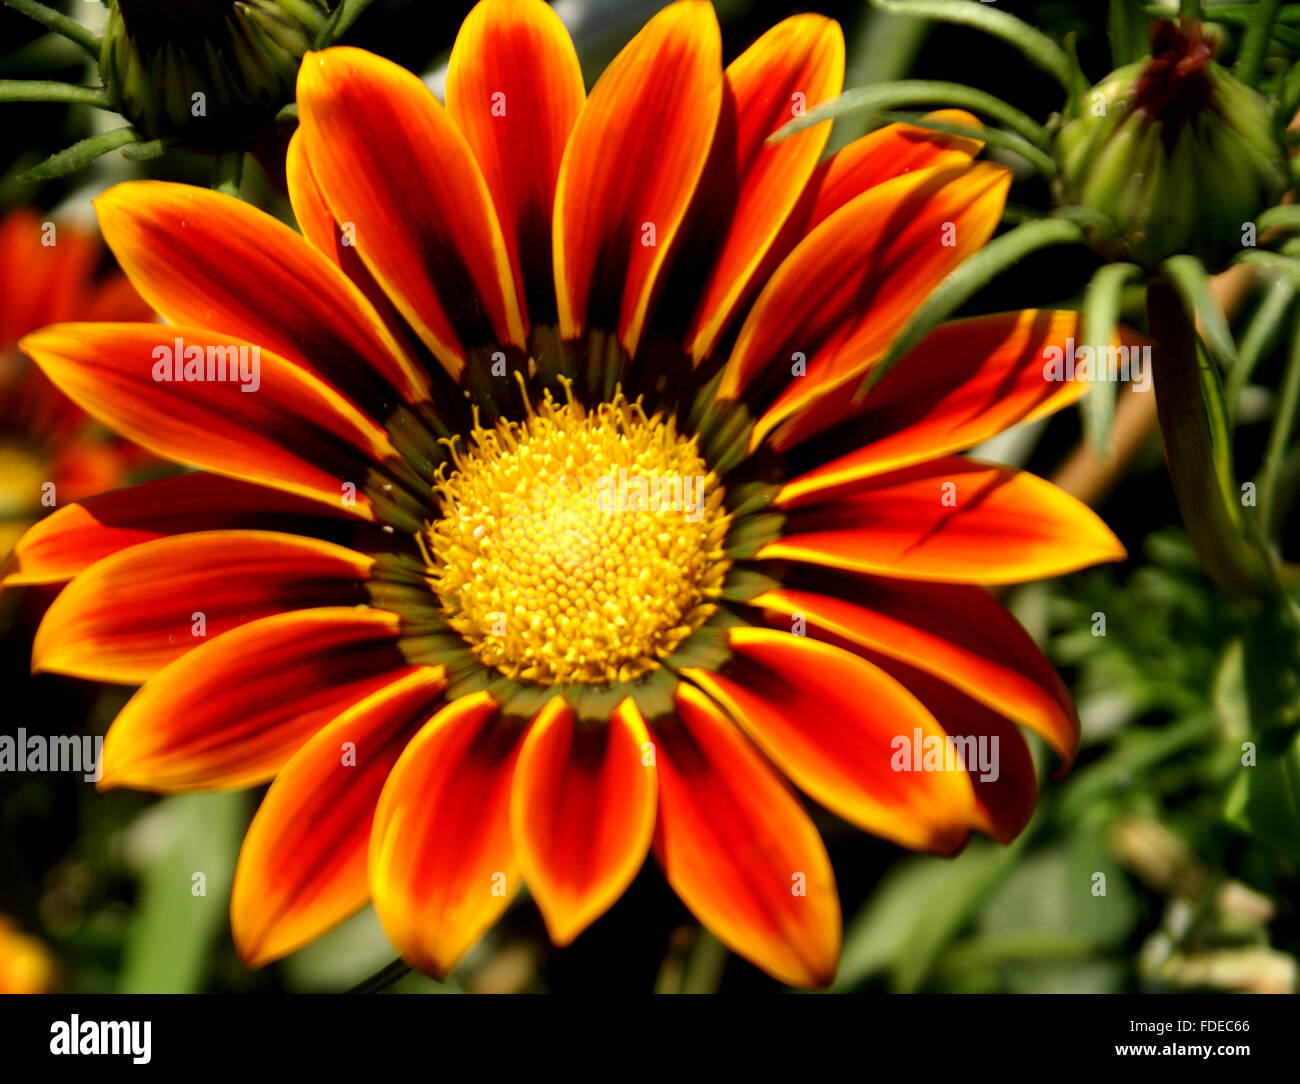 Gazania ringens, Cultivated ornamental herb with silvery hairy leaves in basal rosette and orange red flower head, - Stock Image